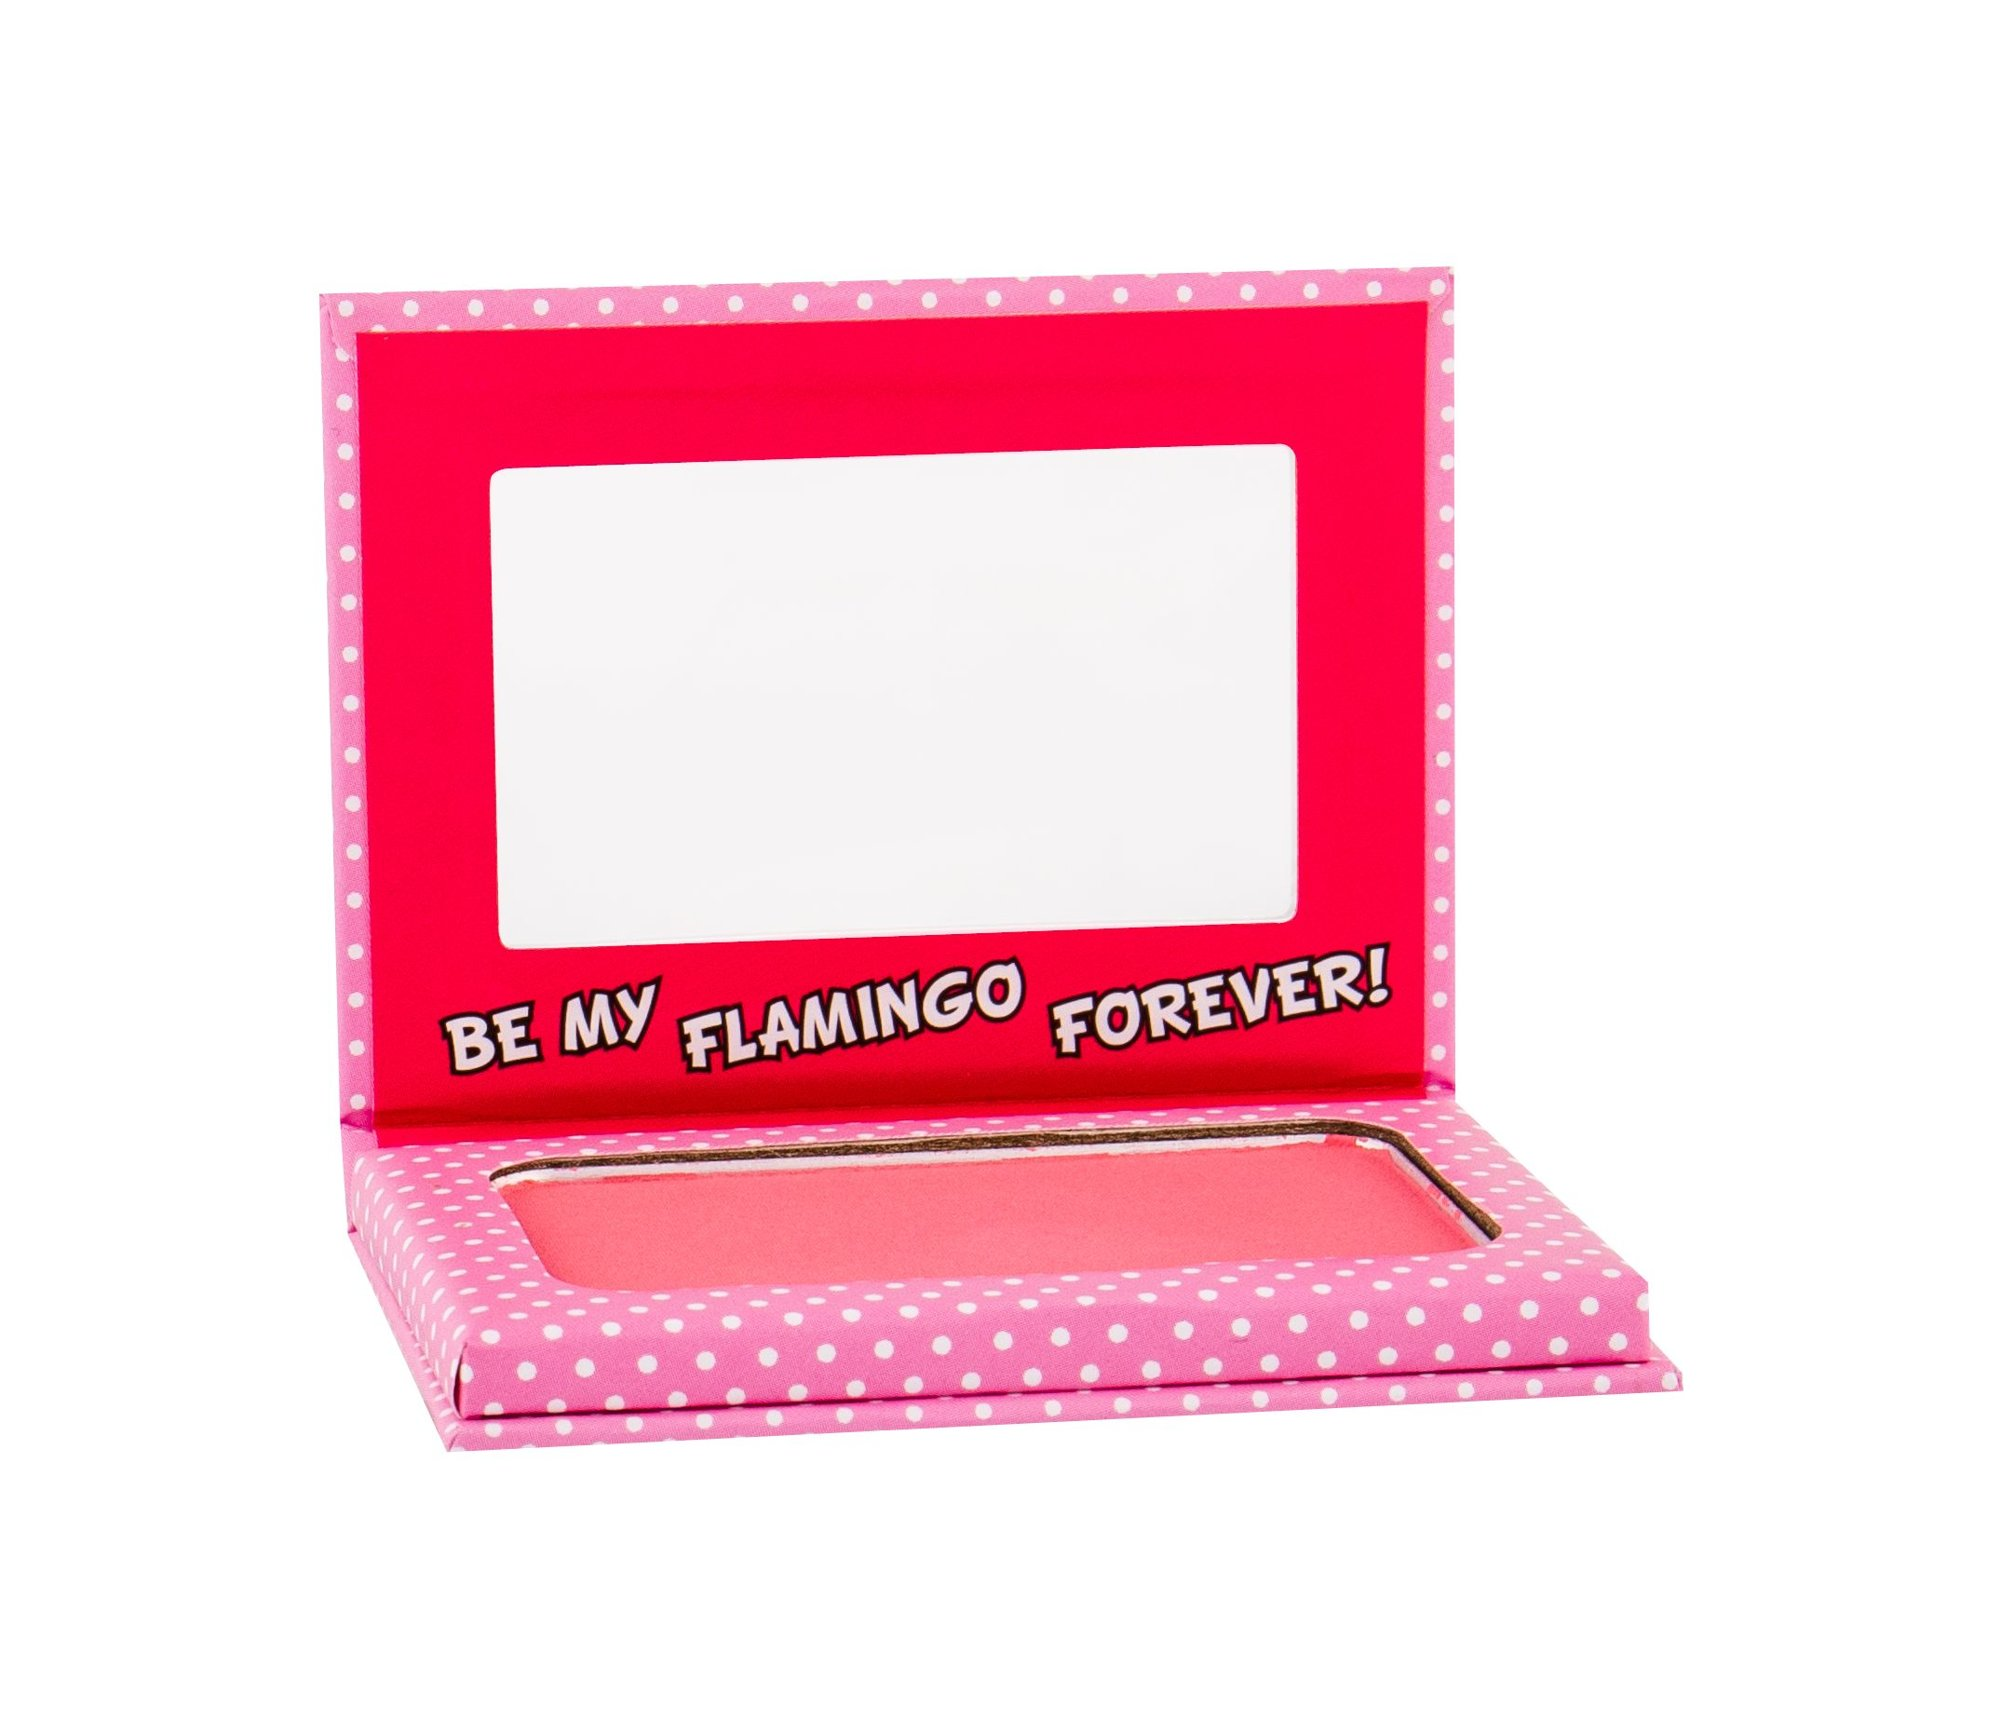 Misslyn Treat Me Sweet Blush 6ml 08 Be My Flamingo Forever!